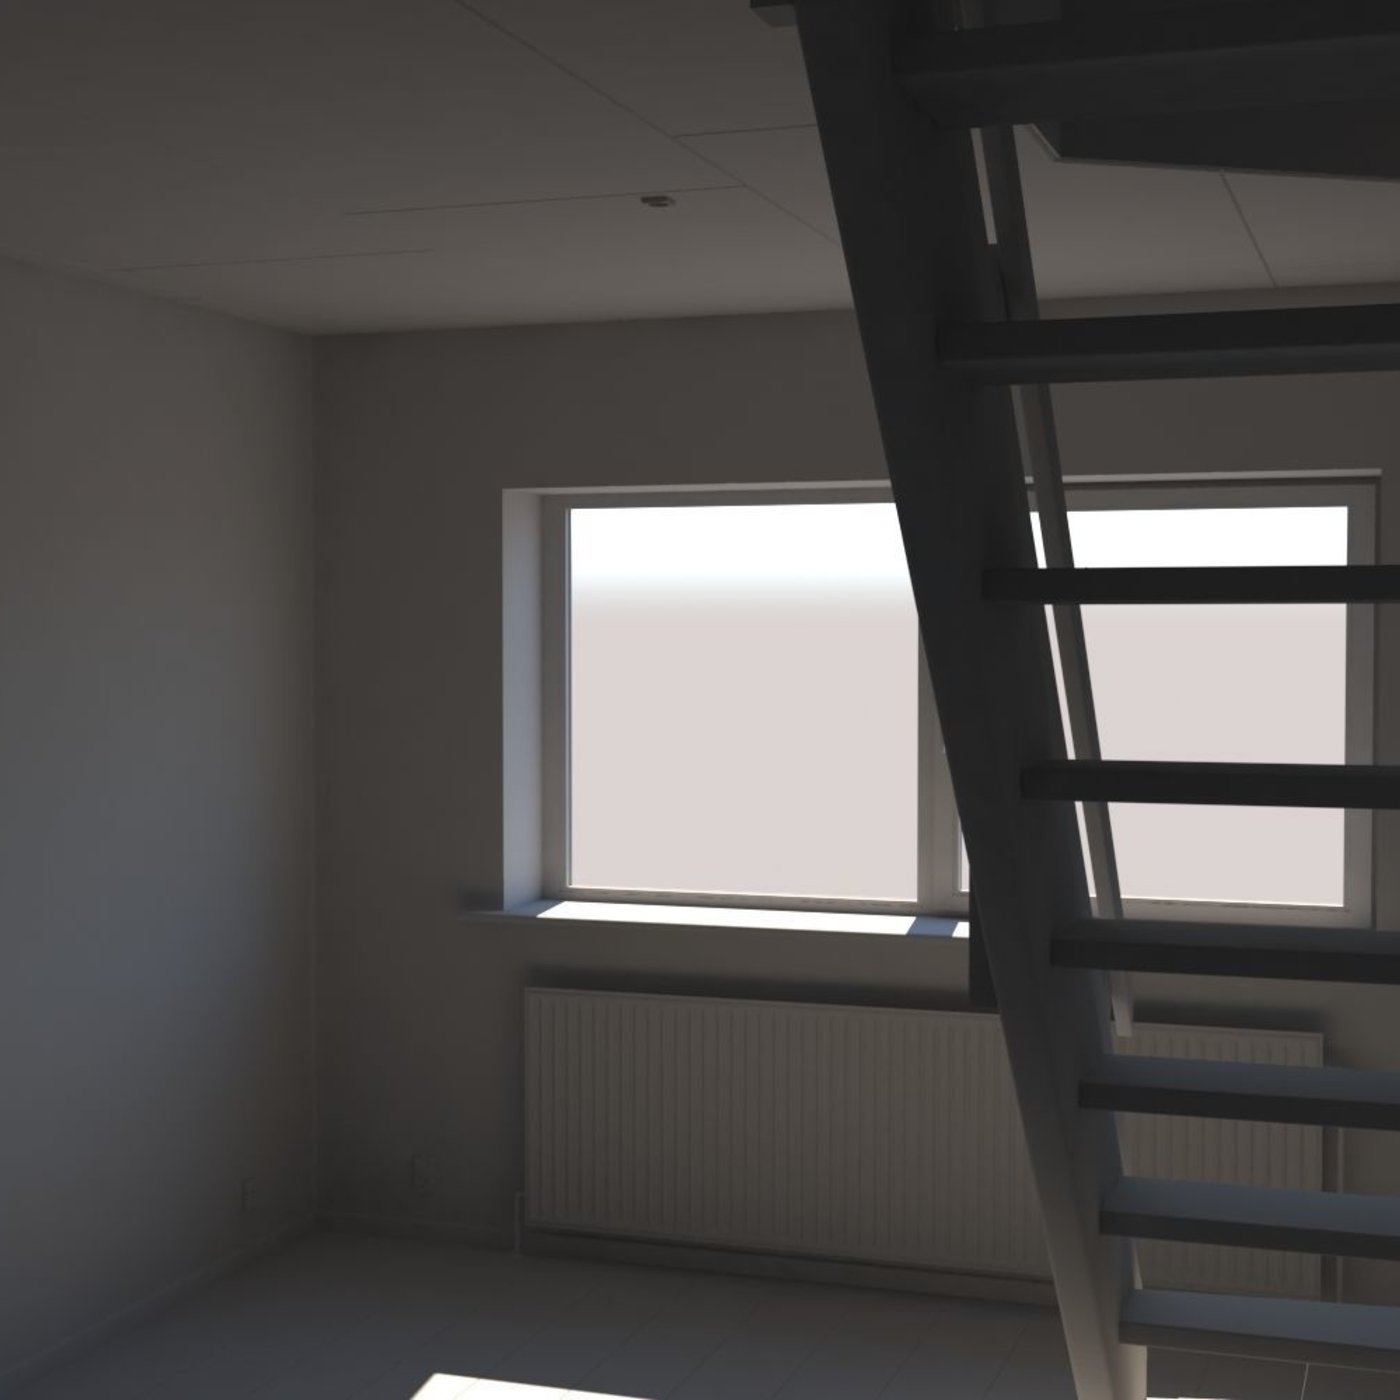 One week apartment project